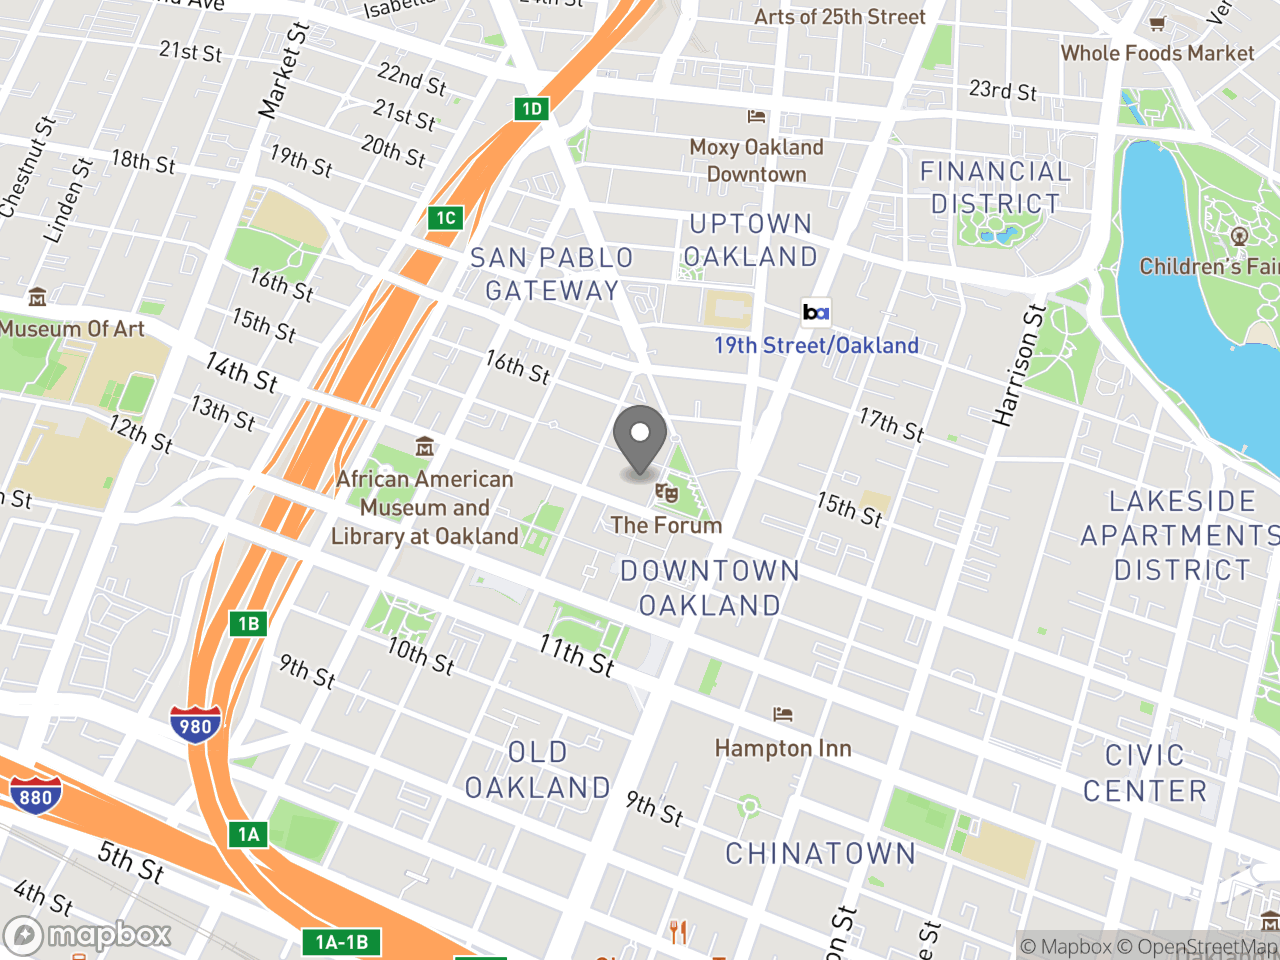 Map location for Affordable Housing & Infrastructure Bond Public Oversight Committee (I-BOND), located at 1 Frank H Ogawa Plaza in Oakland, CA 94612